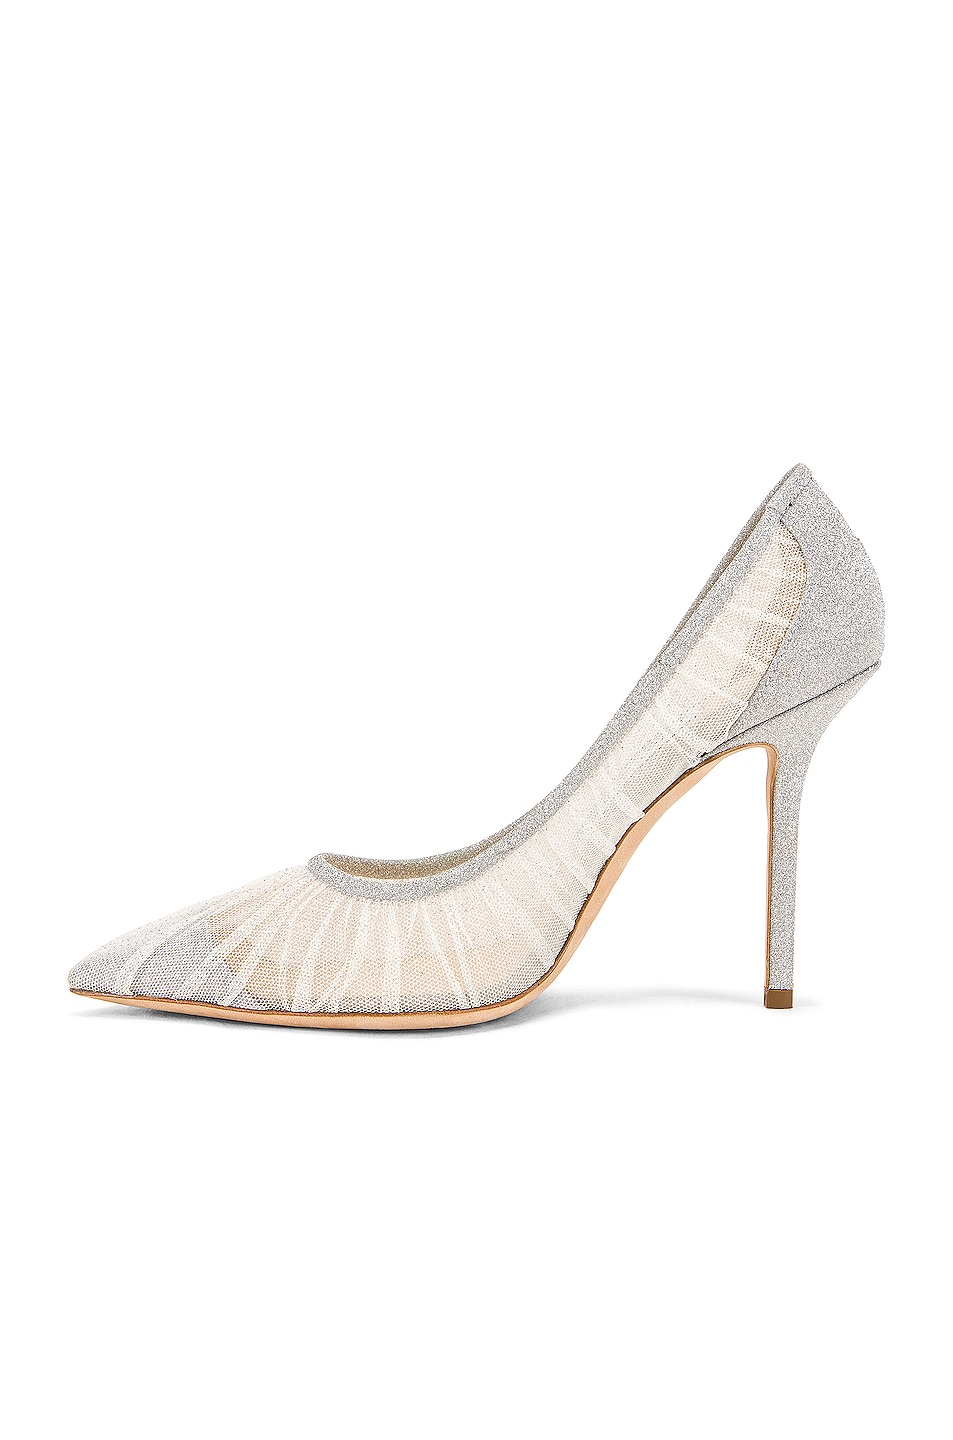 Image 5 of Jimmy Choo Love 100 Fine Glitter Heel in Ivory & Silver